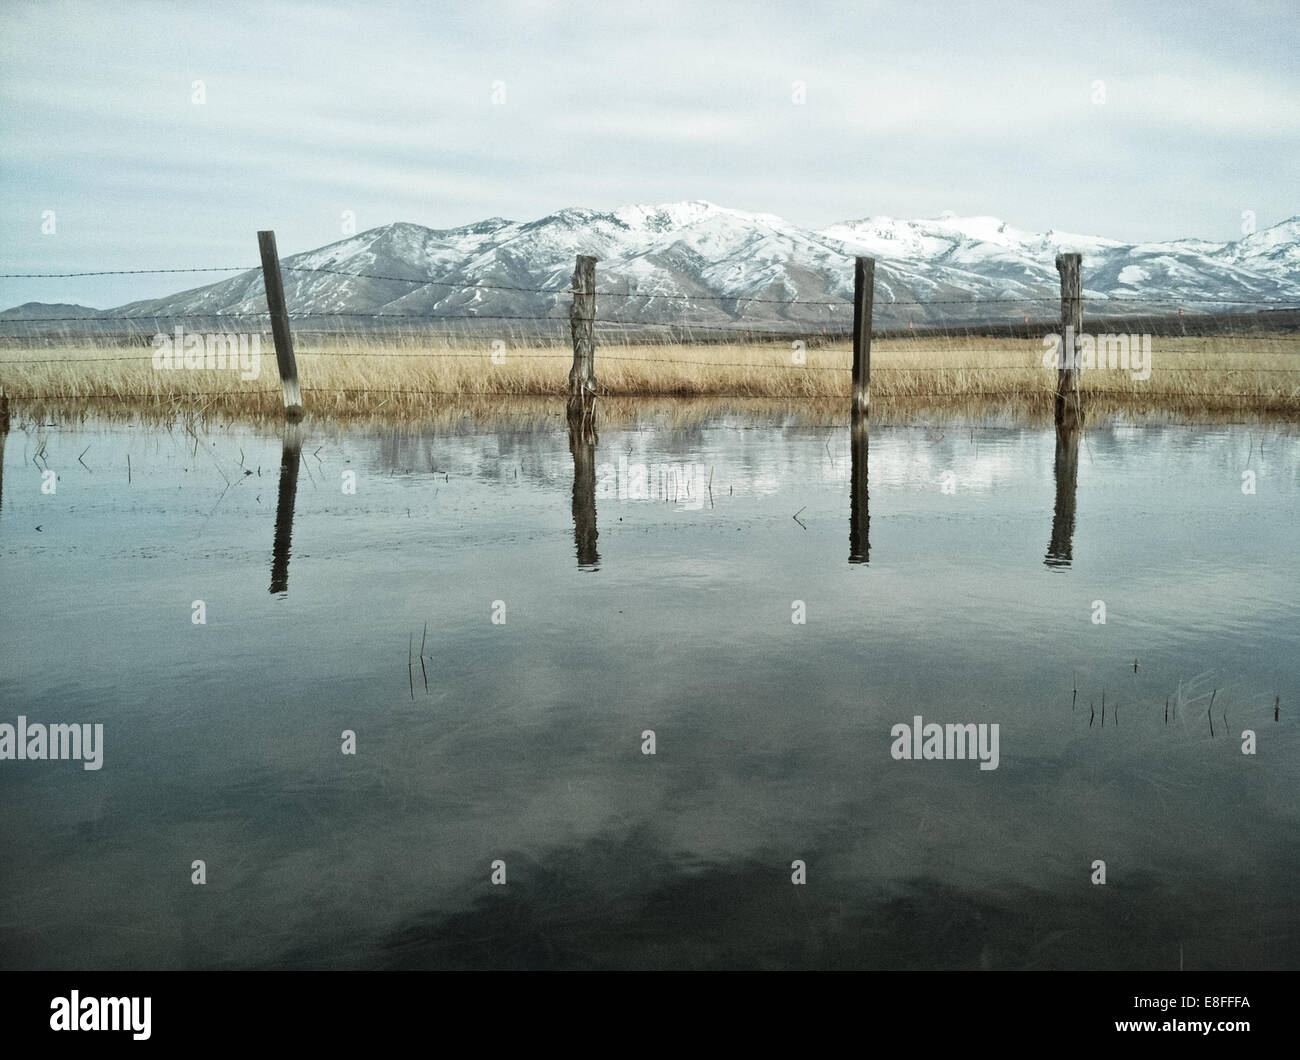 Wire fence reflecting in lake - Stock Image